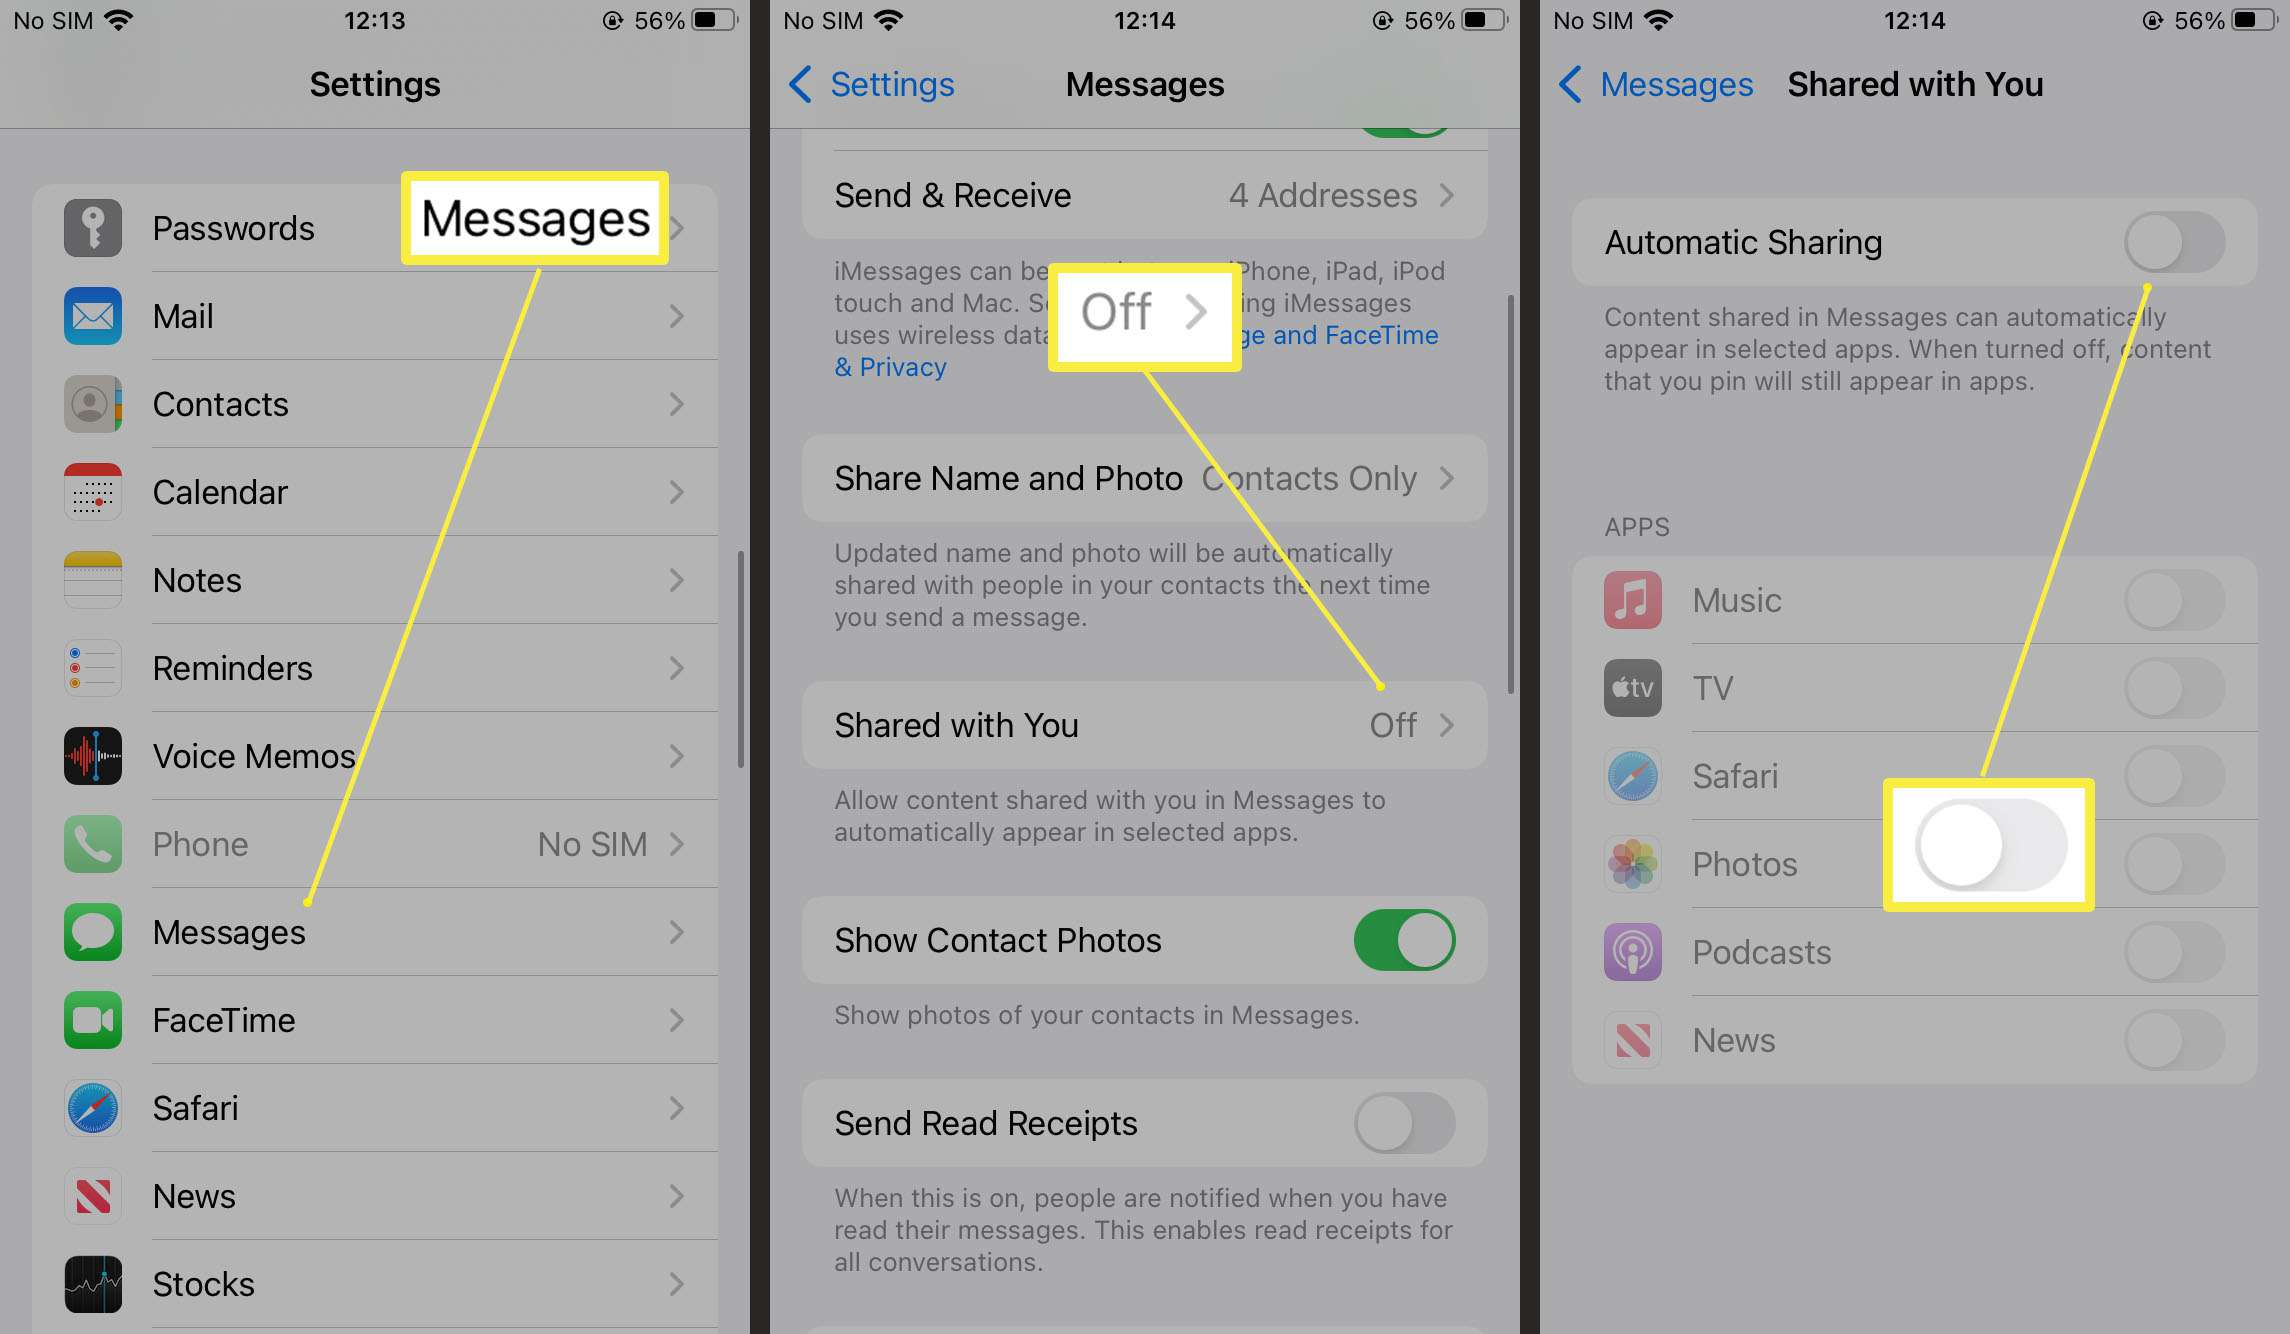 Steps required to enable automatic sharing within Messages on iOS 15